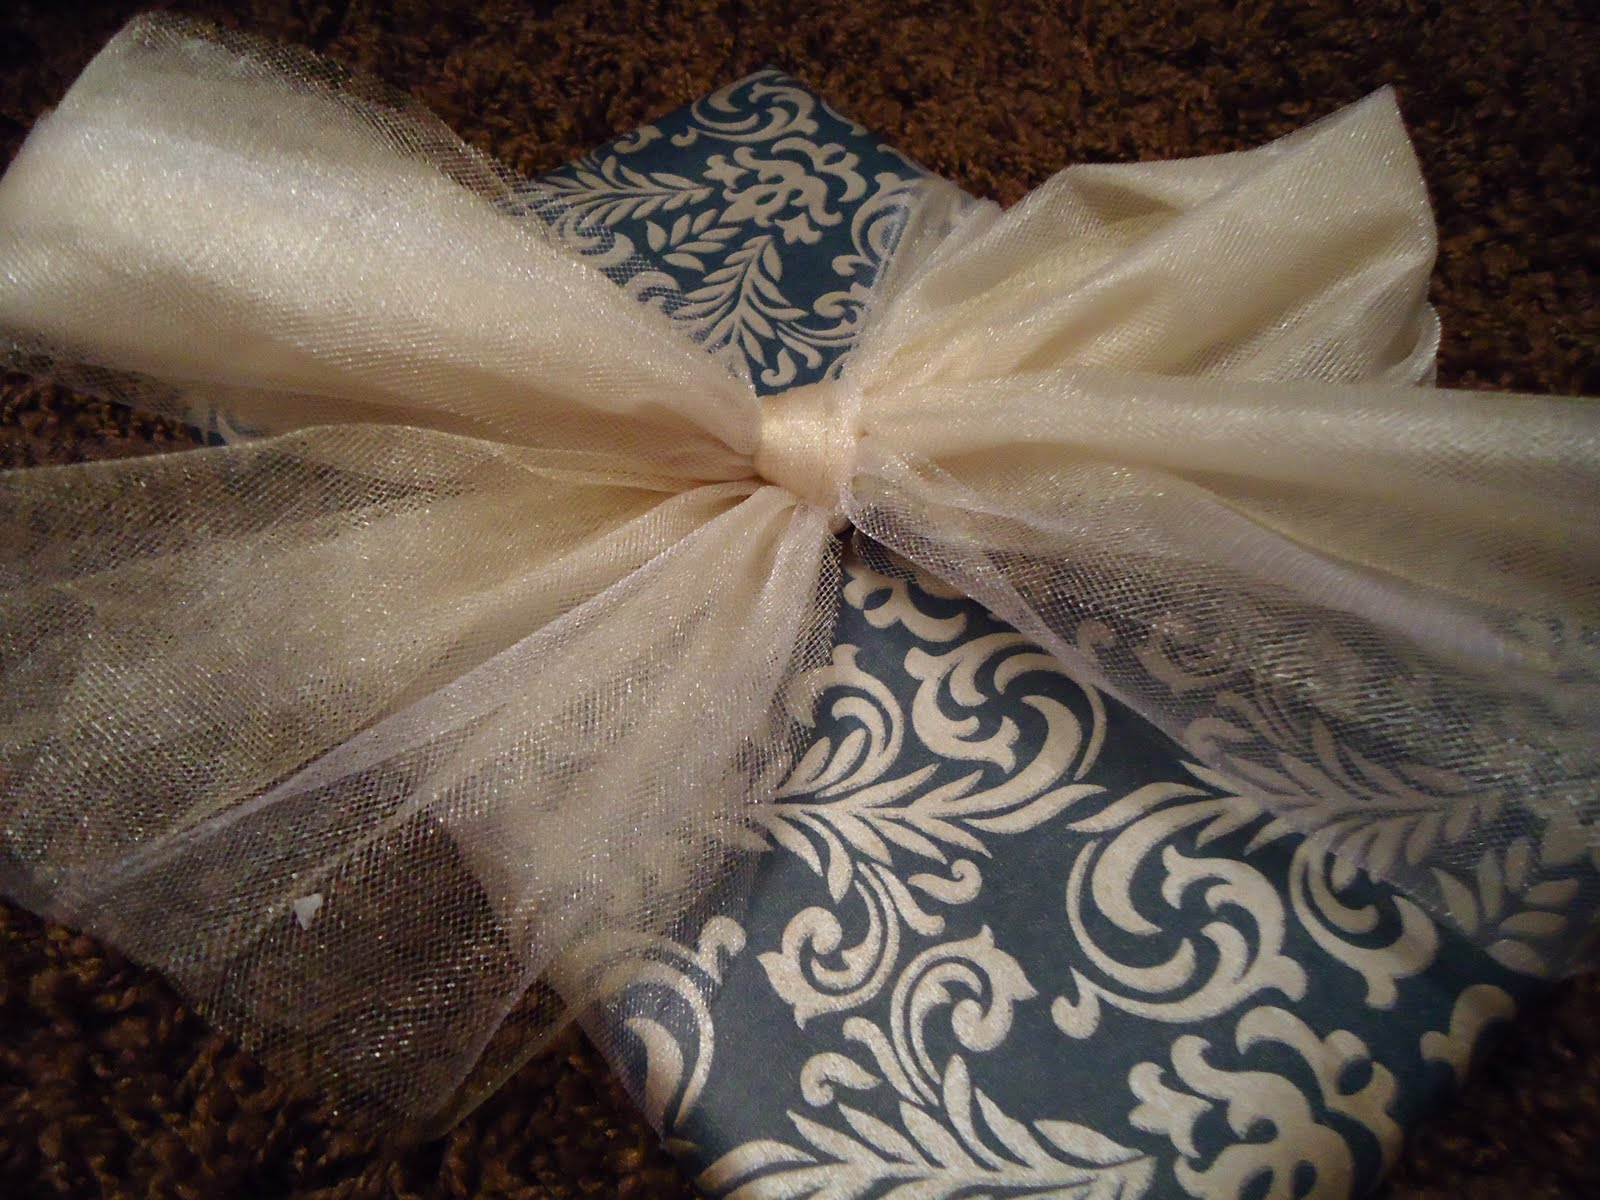 I make these poof bows for so many gifts! They're so simple and super cute! :) All you need is tulle and scissors! Here's how it works.